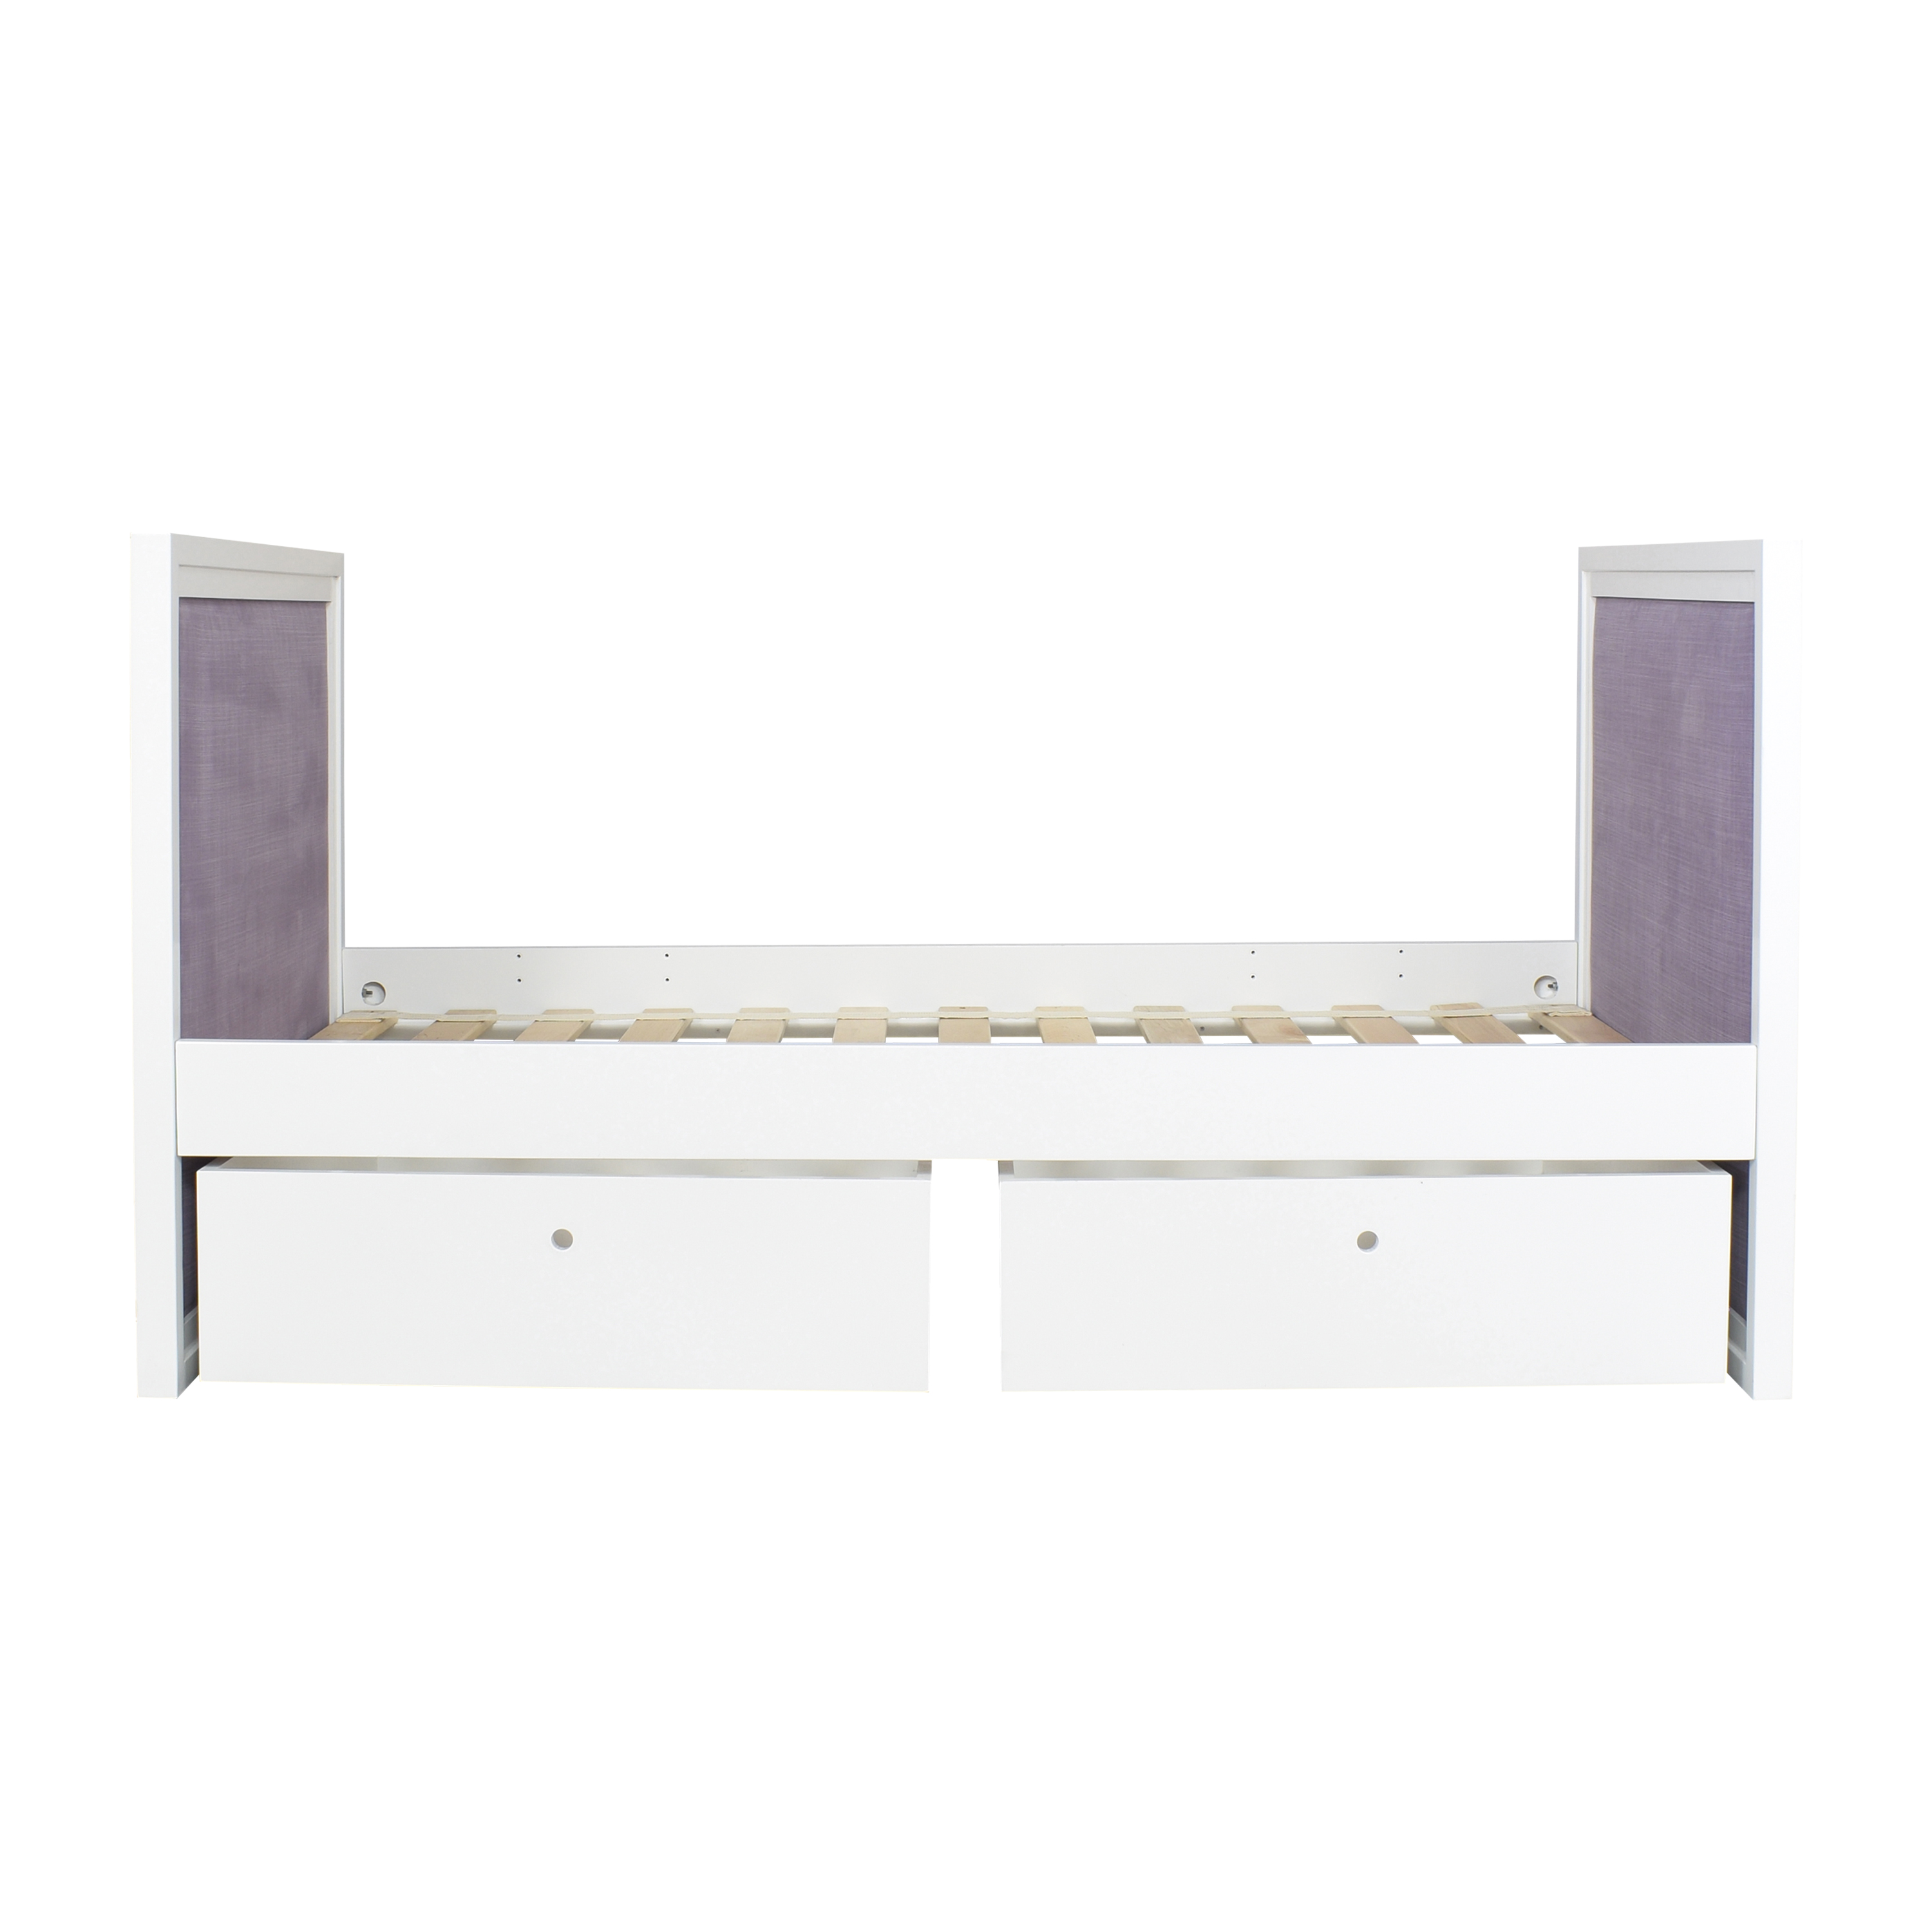 ducduc ducduc Cabana Upholstered Twin Daybed with Storage White / Purple